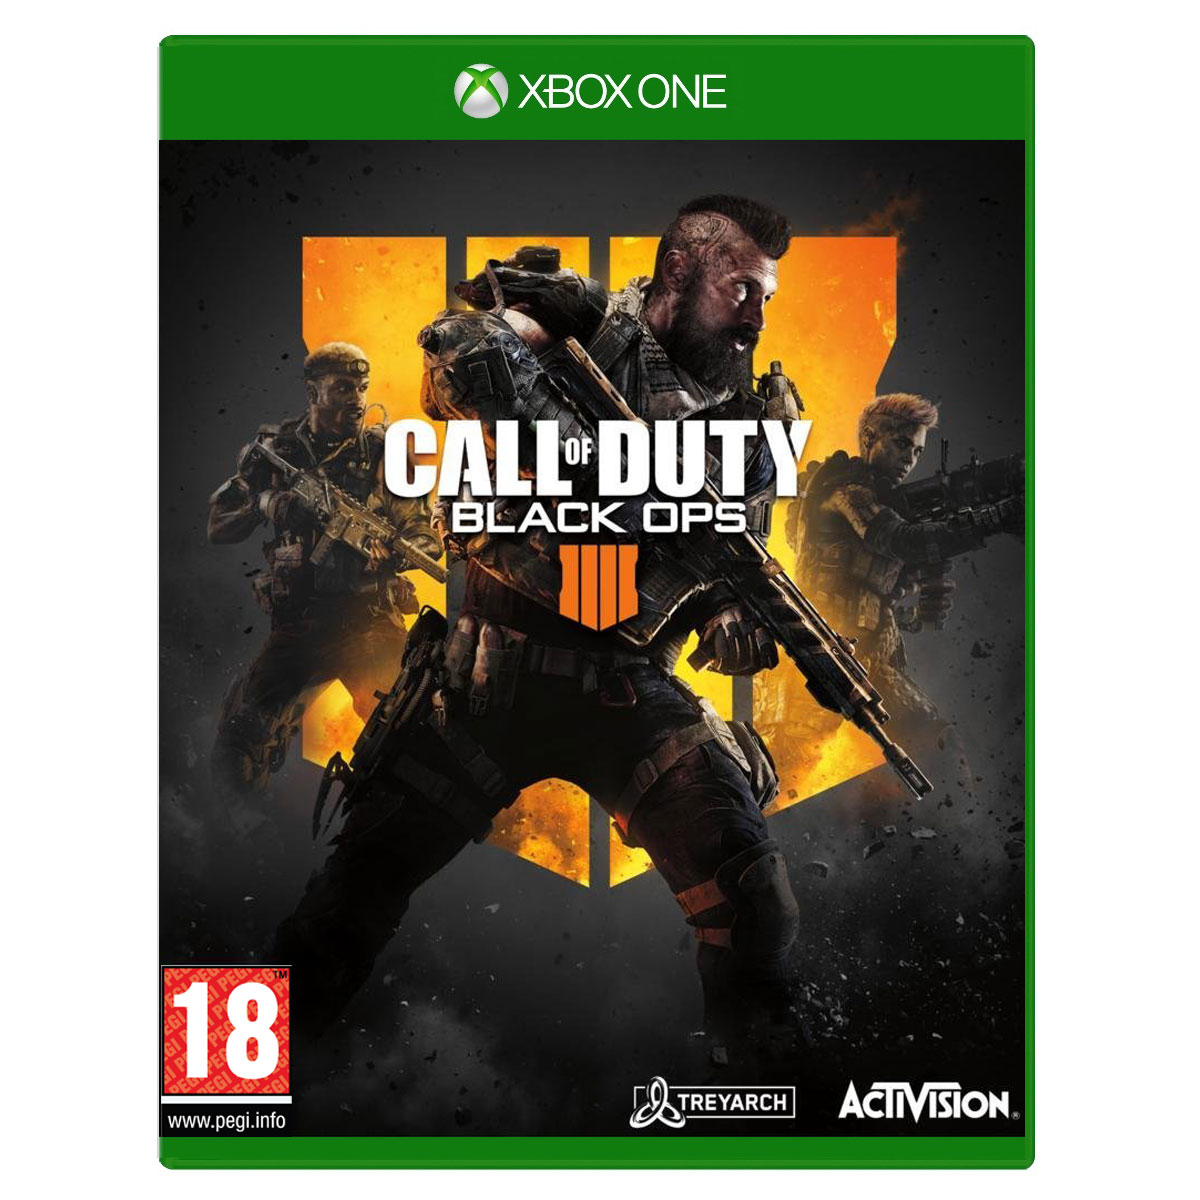 Jeux Xbox One Call of Duty : Black Ops 4 (Xbox One) Call of Duty : Black Ops 4 (Xbox One)